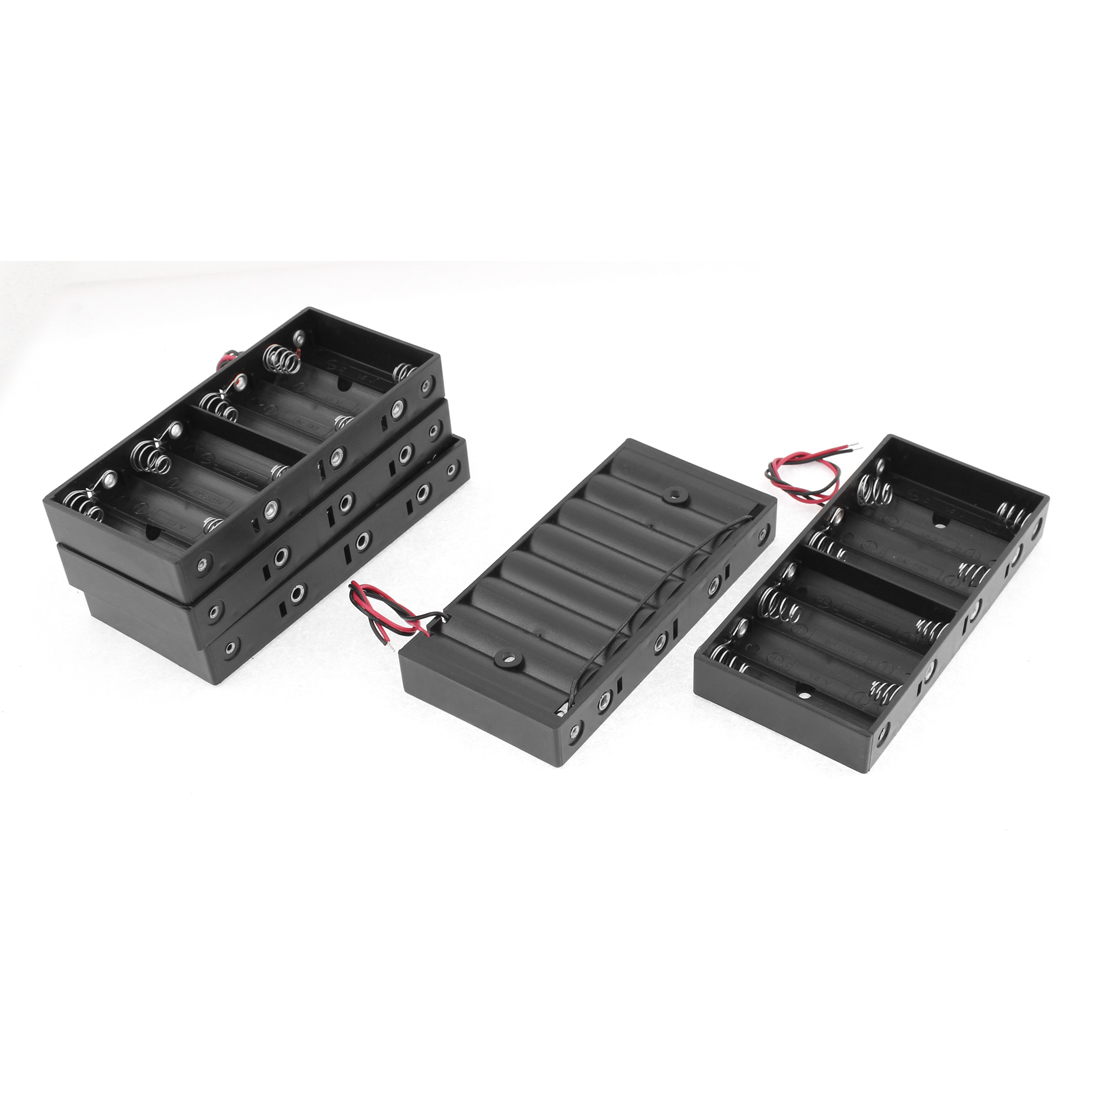 5 Pcs Plastic 2 Wires 8 x 1.5V AA Battery Clip Holder Box Case Black